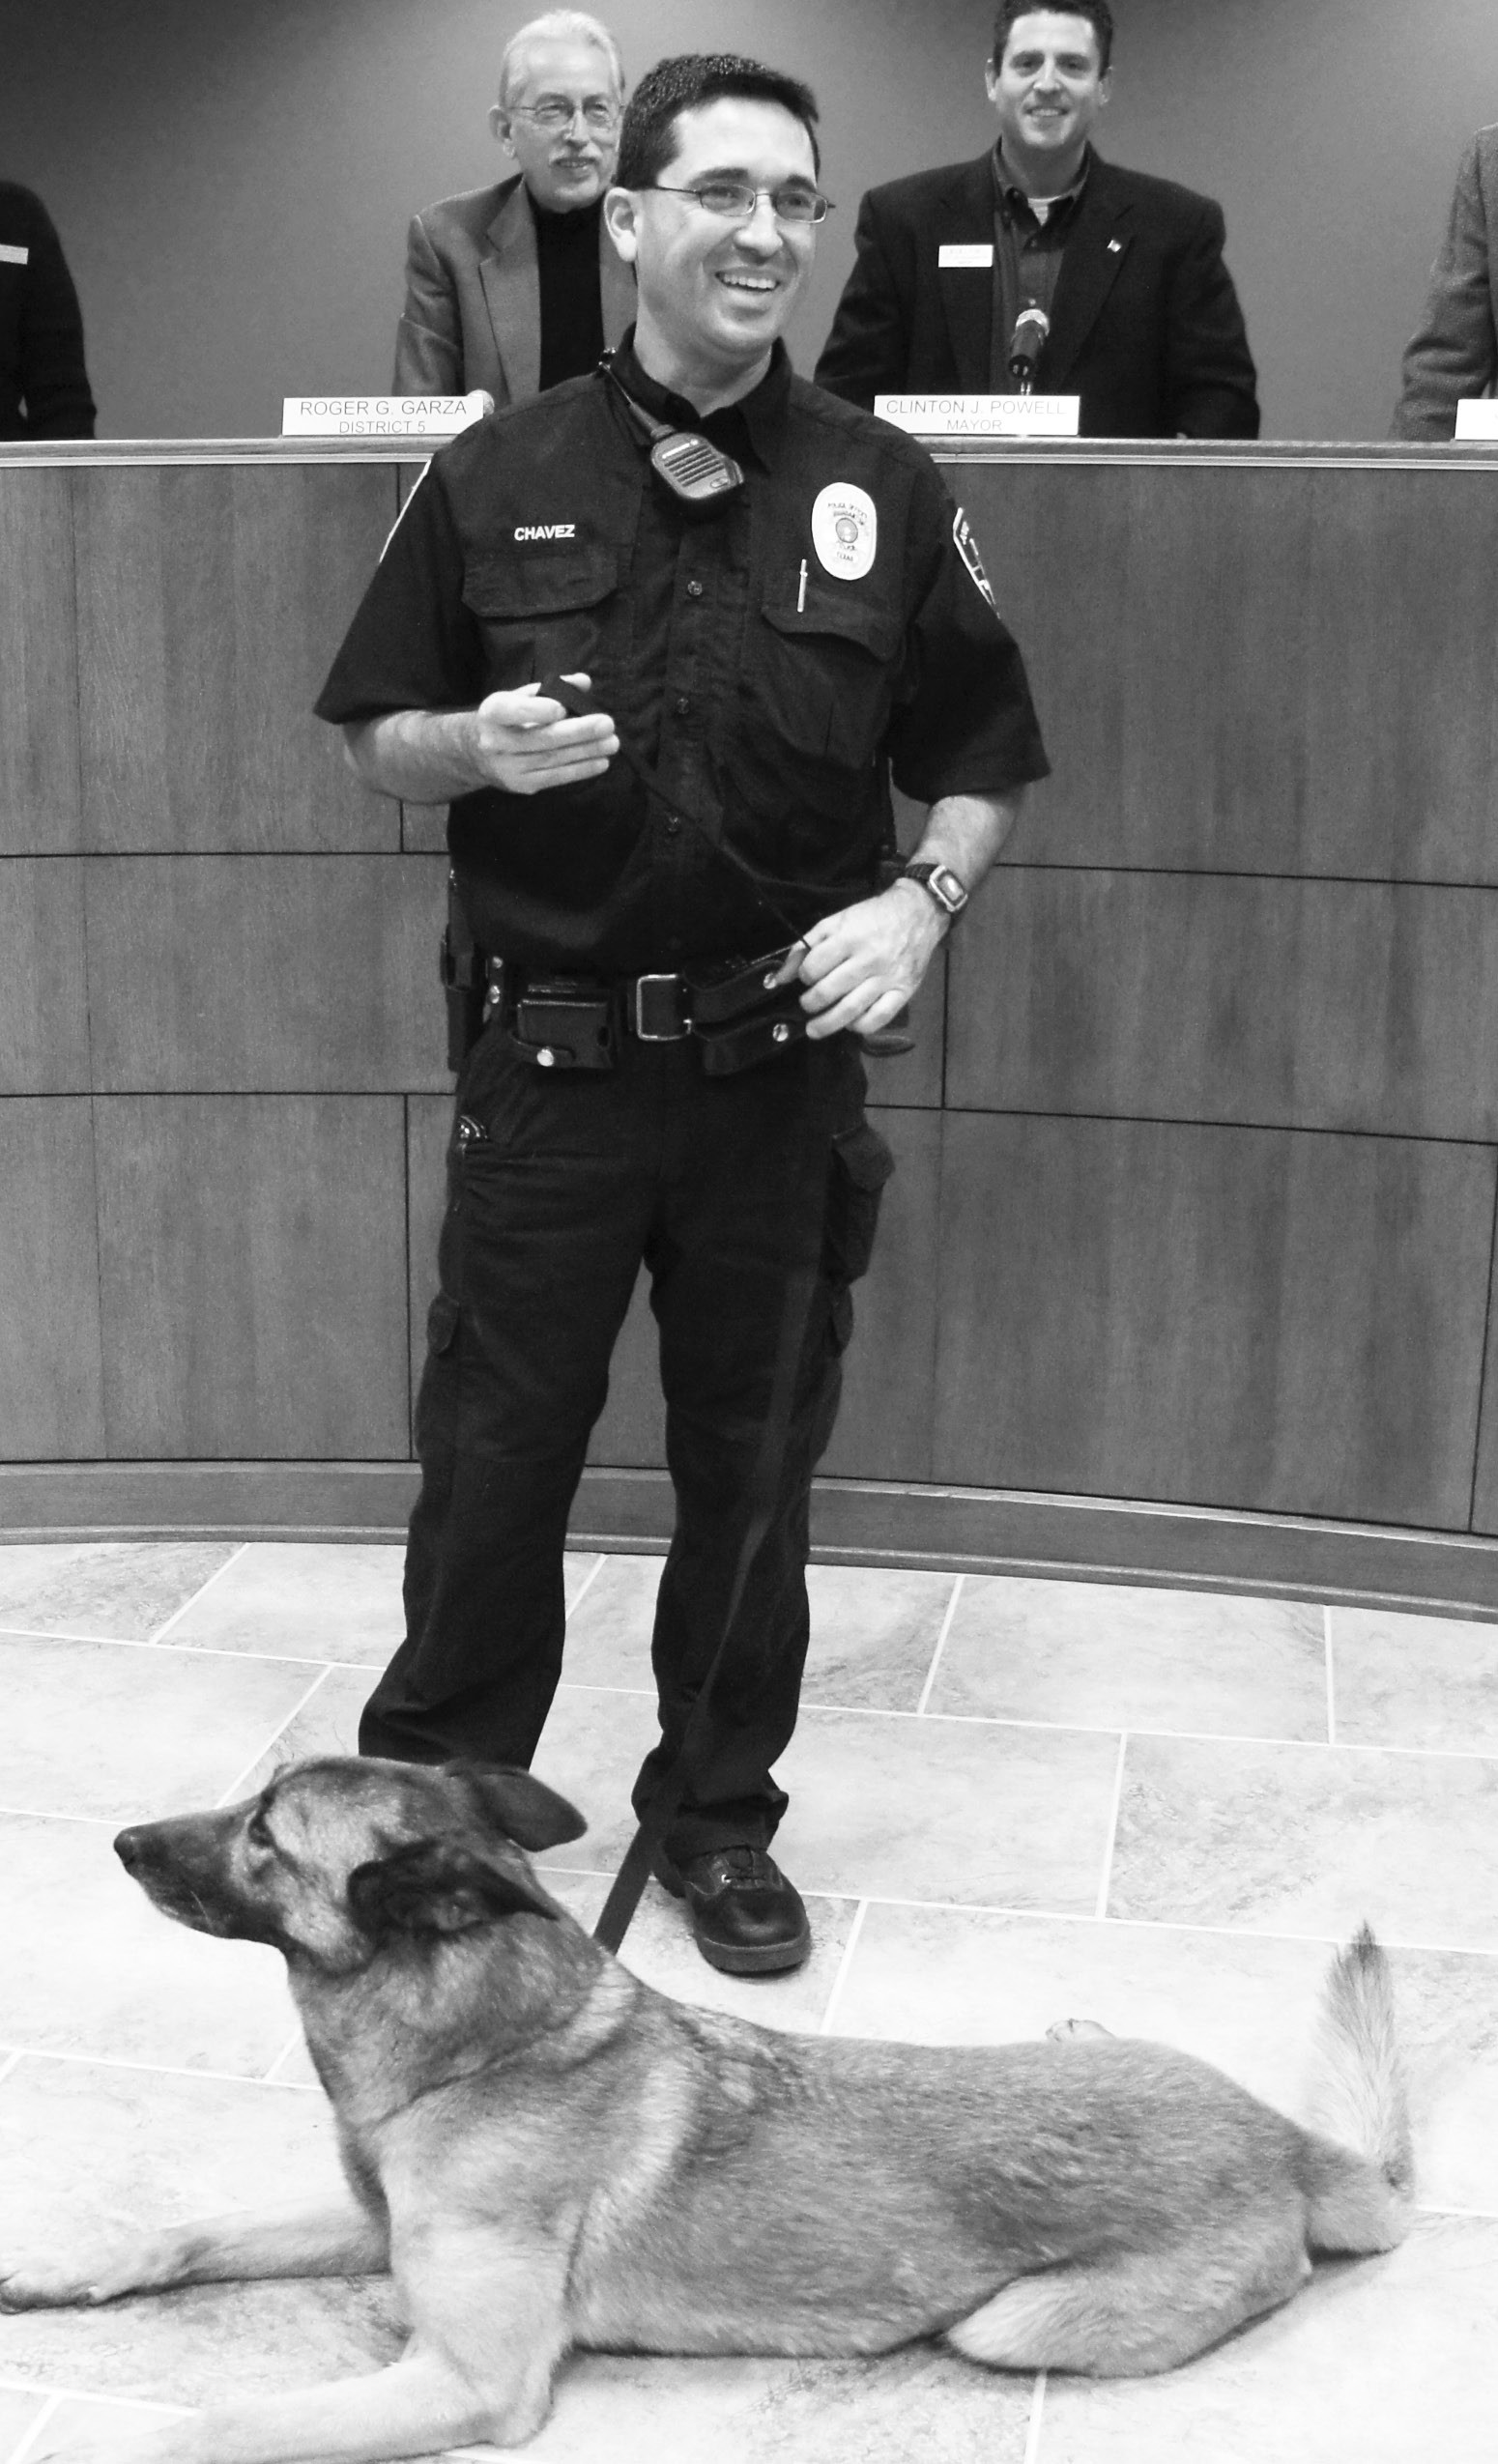 Jourdanton Police Officer Joel Chavez, formerly of the Pleasanton Police Department, shares a few words on the retirement of Lady, the K-9 officer.